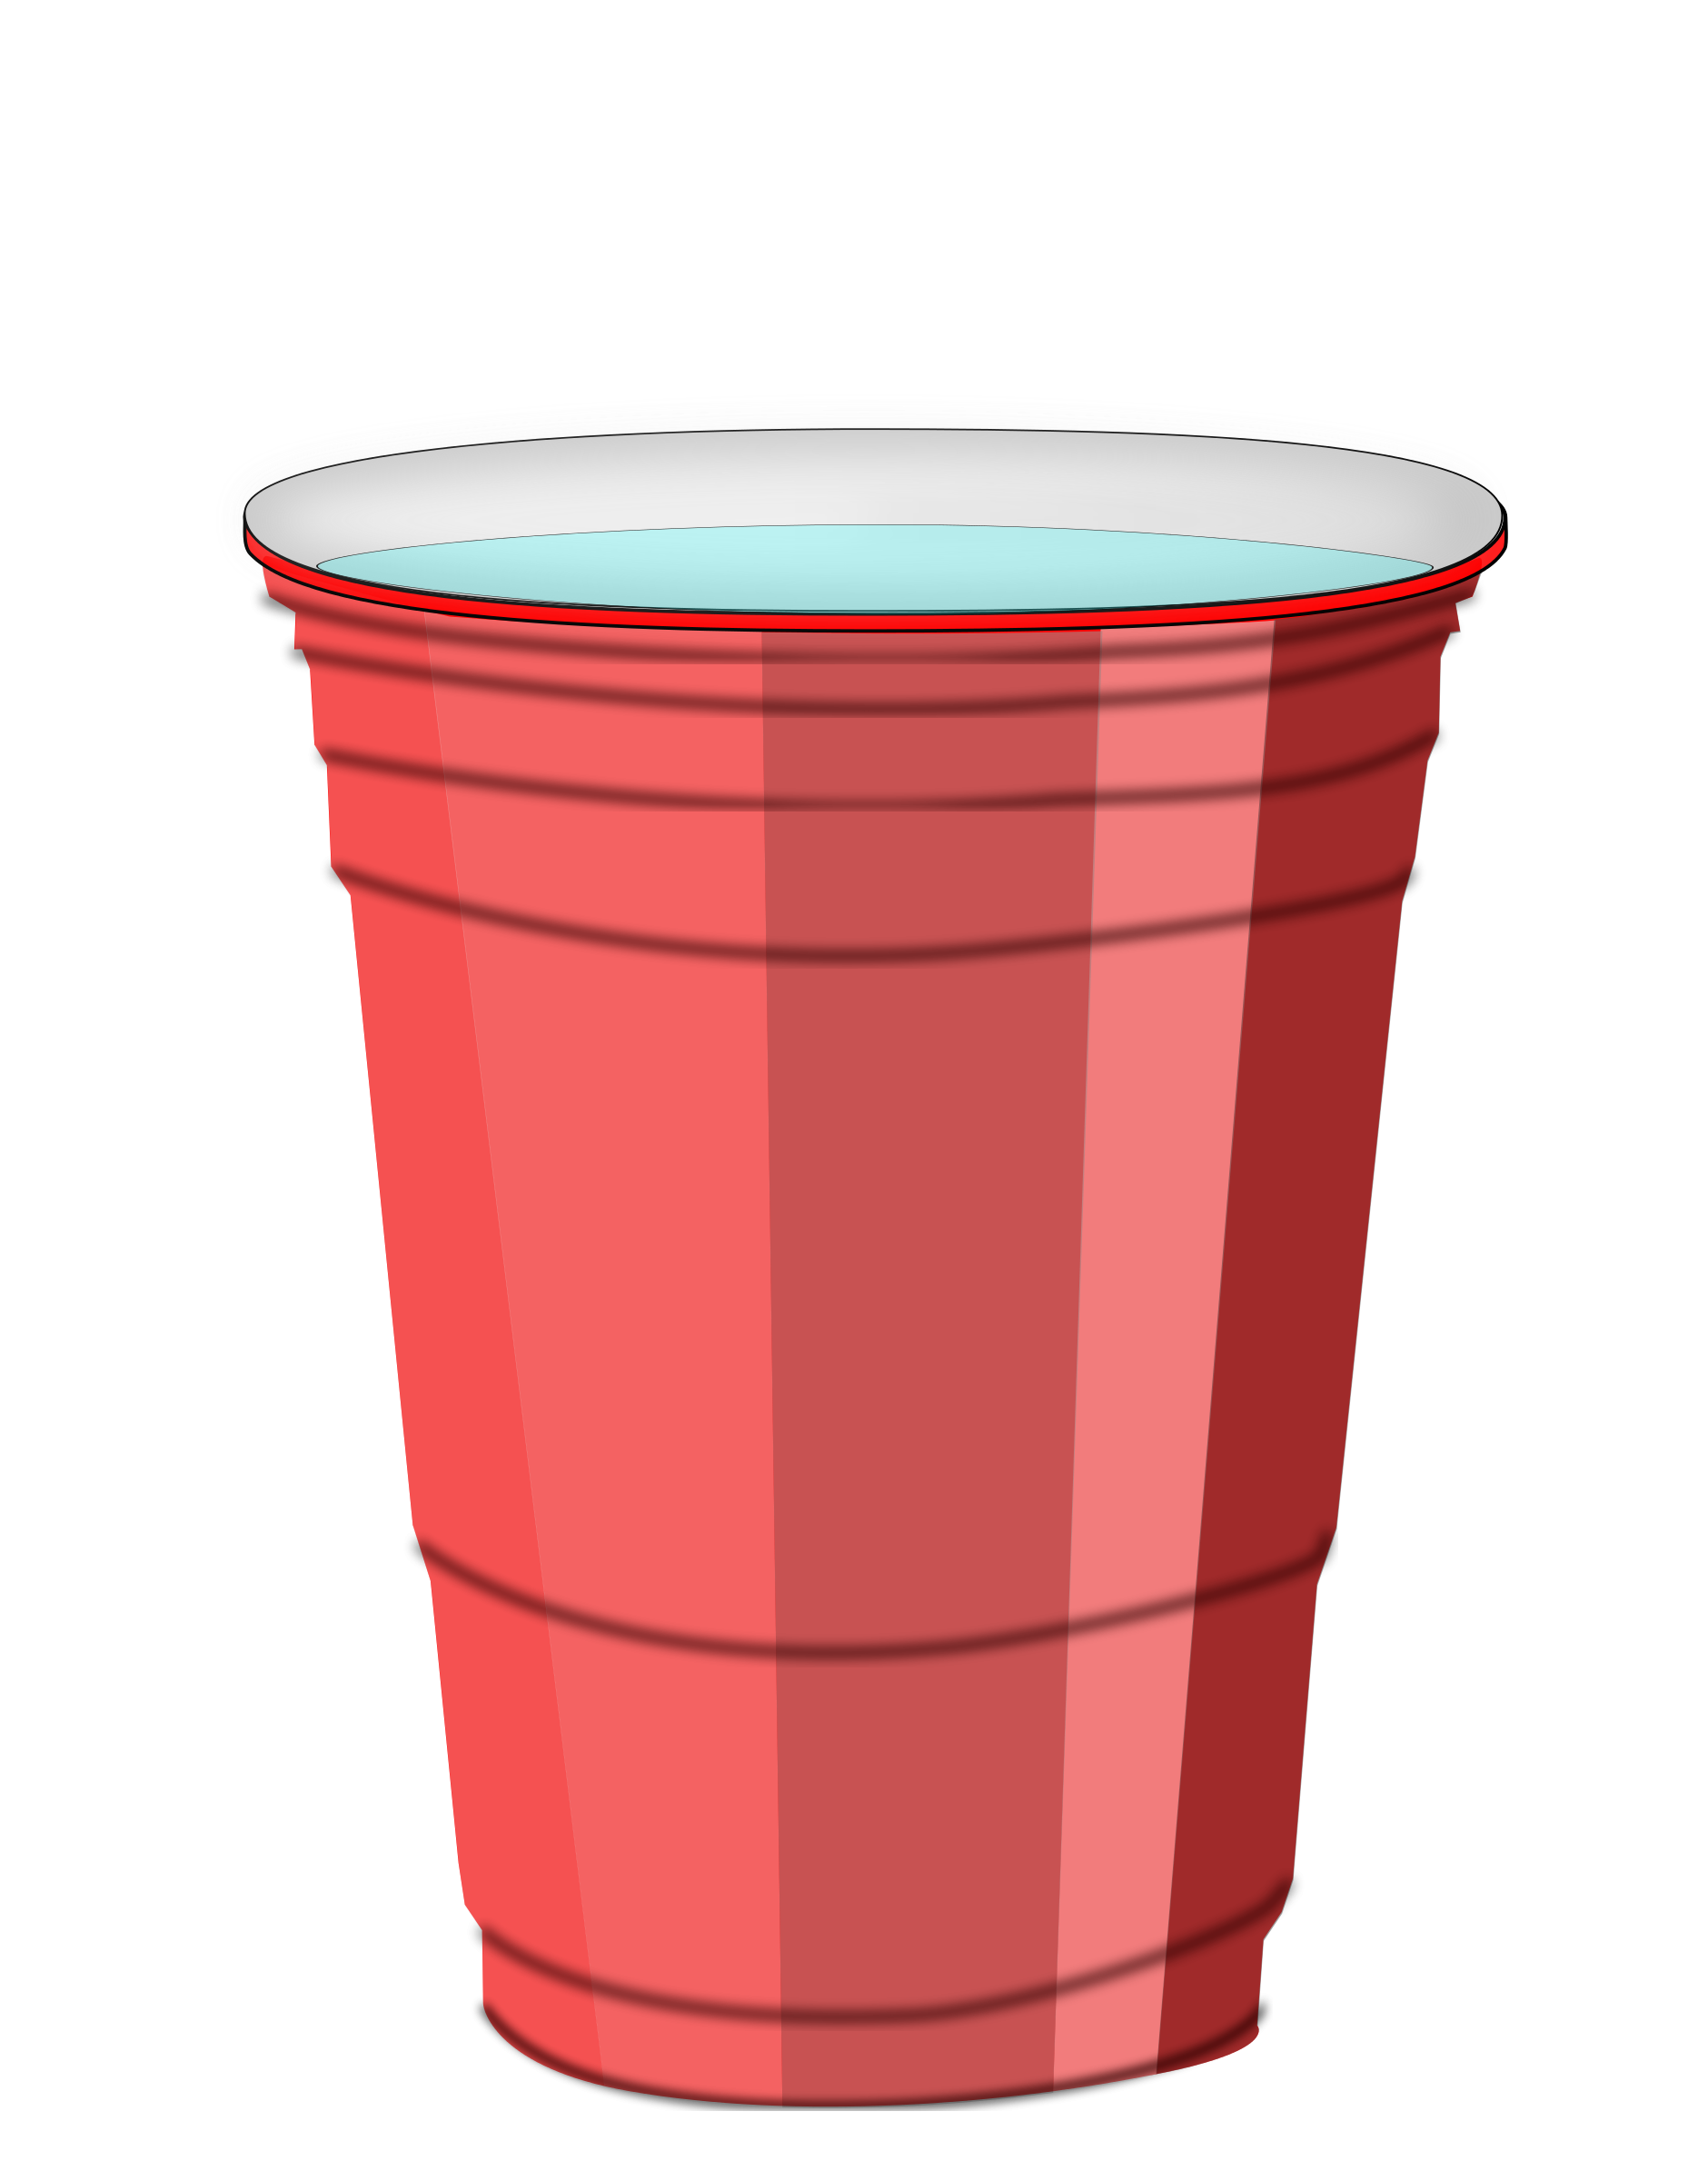 Cup clipart #1, Download drawings